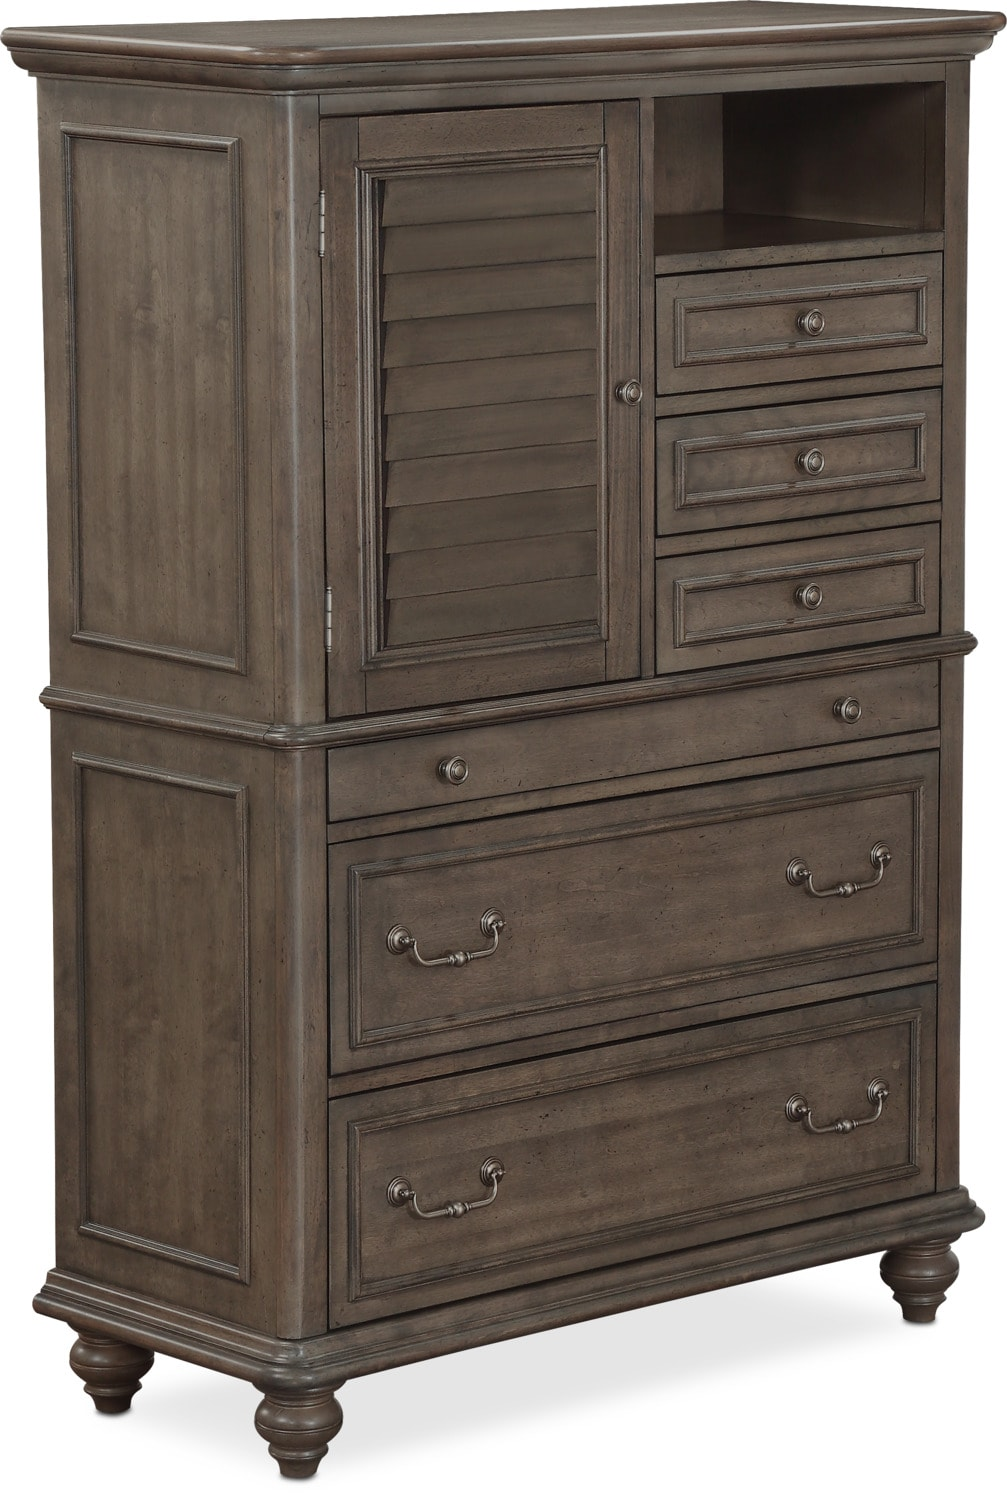 Bedroom Furniture - Charleston Ladys Chest